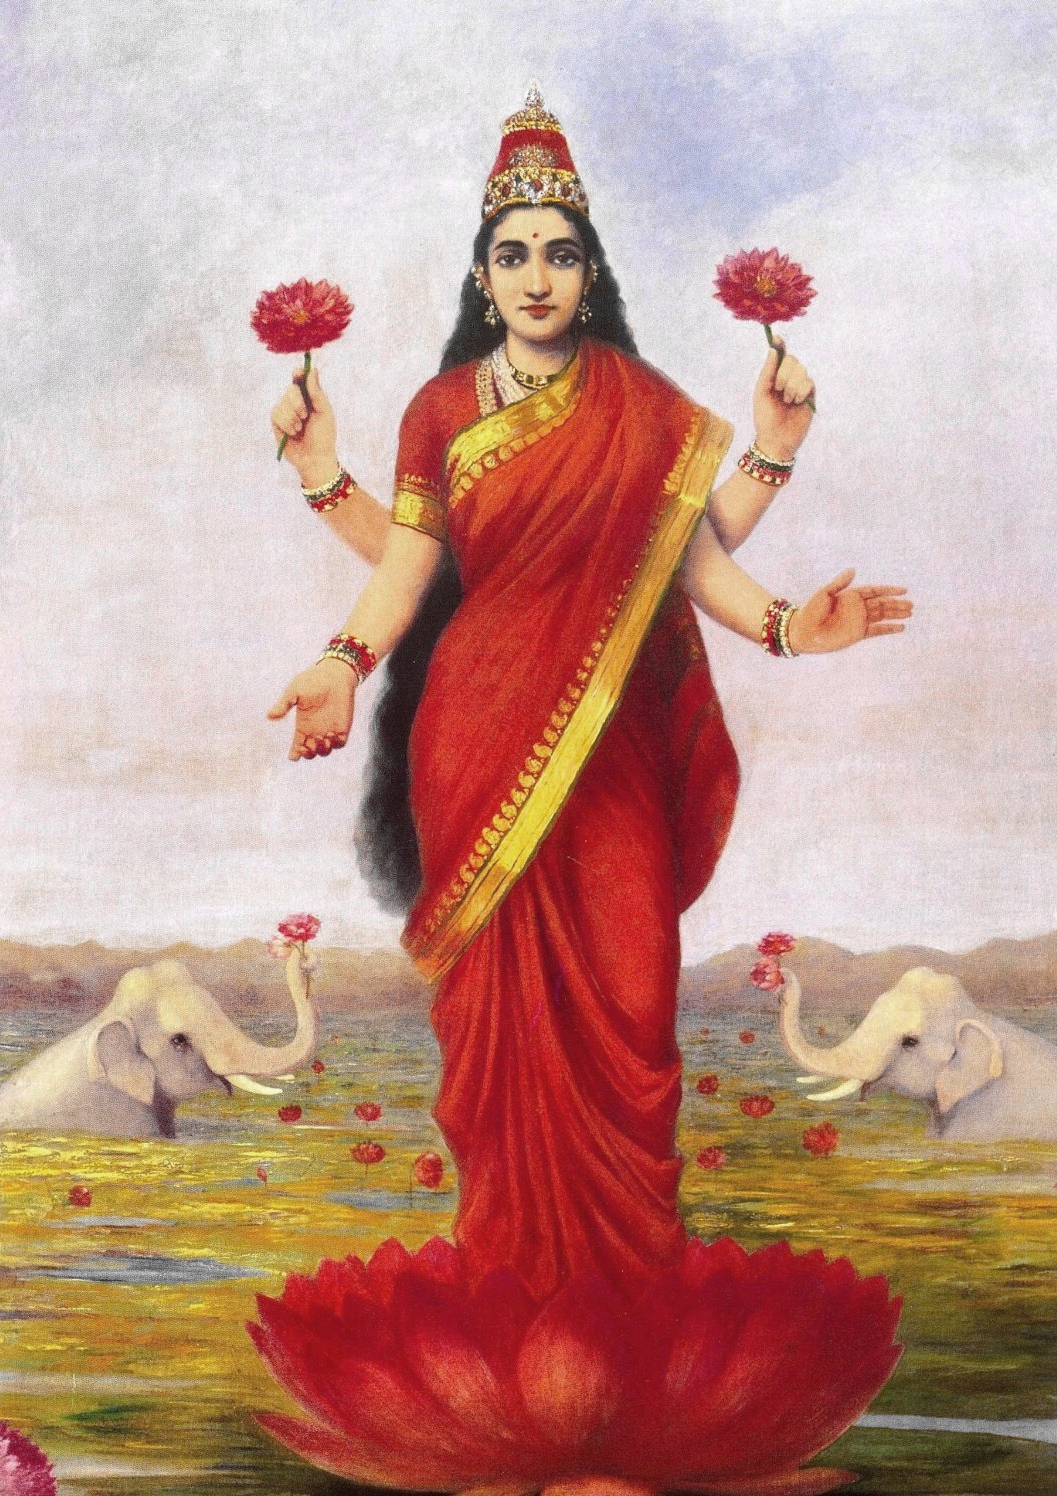 https://upload.wikimedia.org/wikipedia/commons/a/a6/Raja_Ravi_Varma%2C_Goddess_Lakshmi%2C_1896.jpg